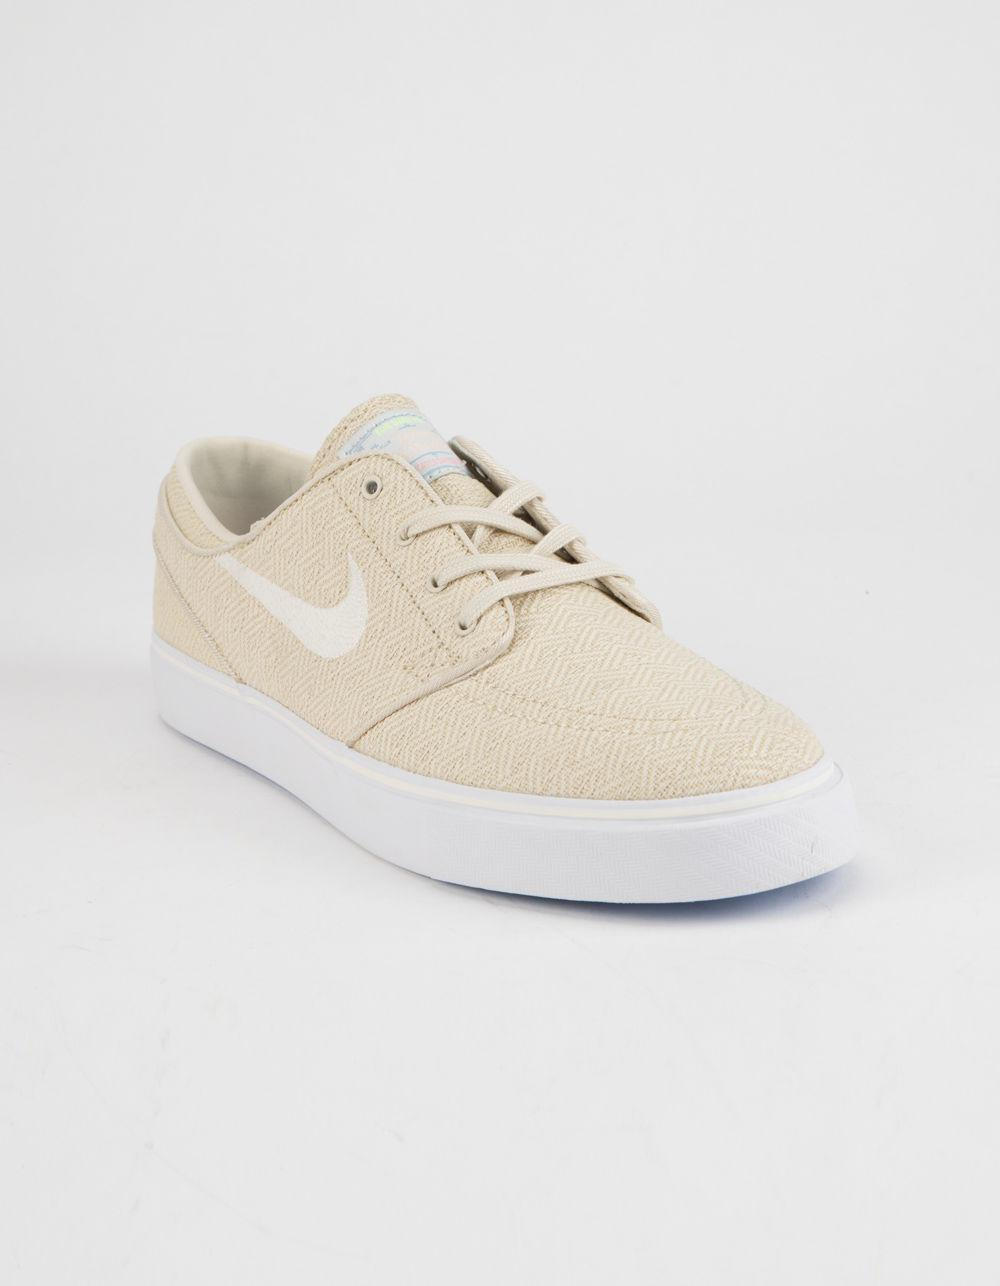 09188bdbcb3a Lyst - Nike Zoom Stefan Janoski Canvas Fossil   Sail White Mens Shoes in  White for Men